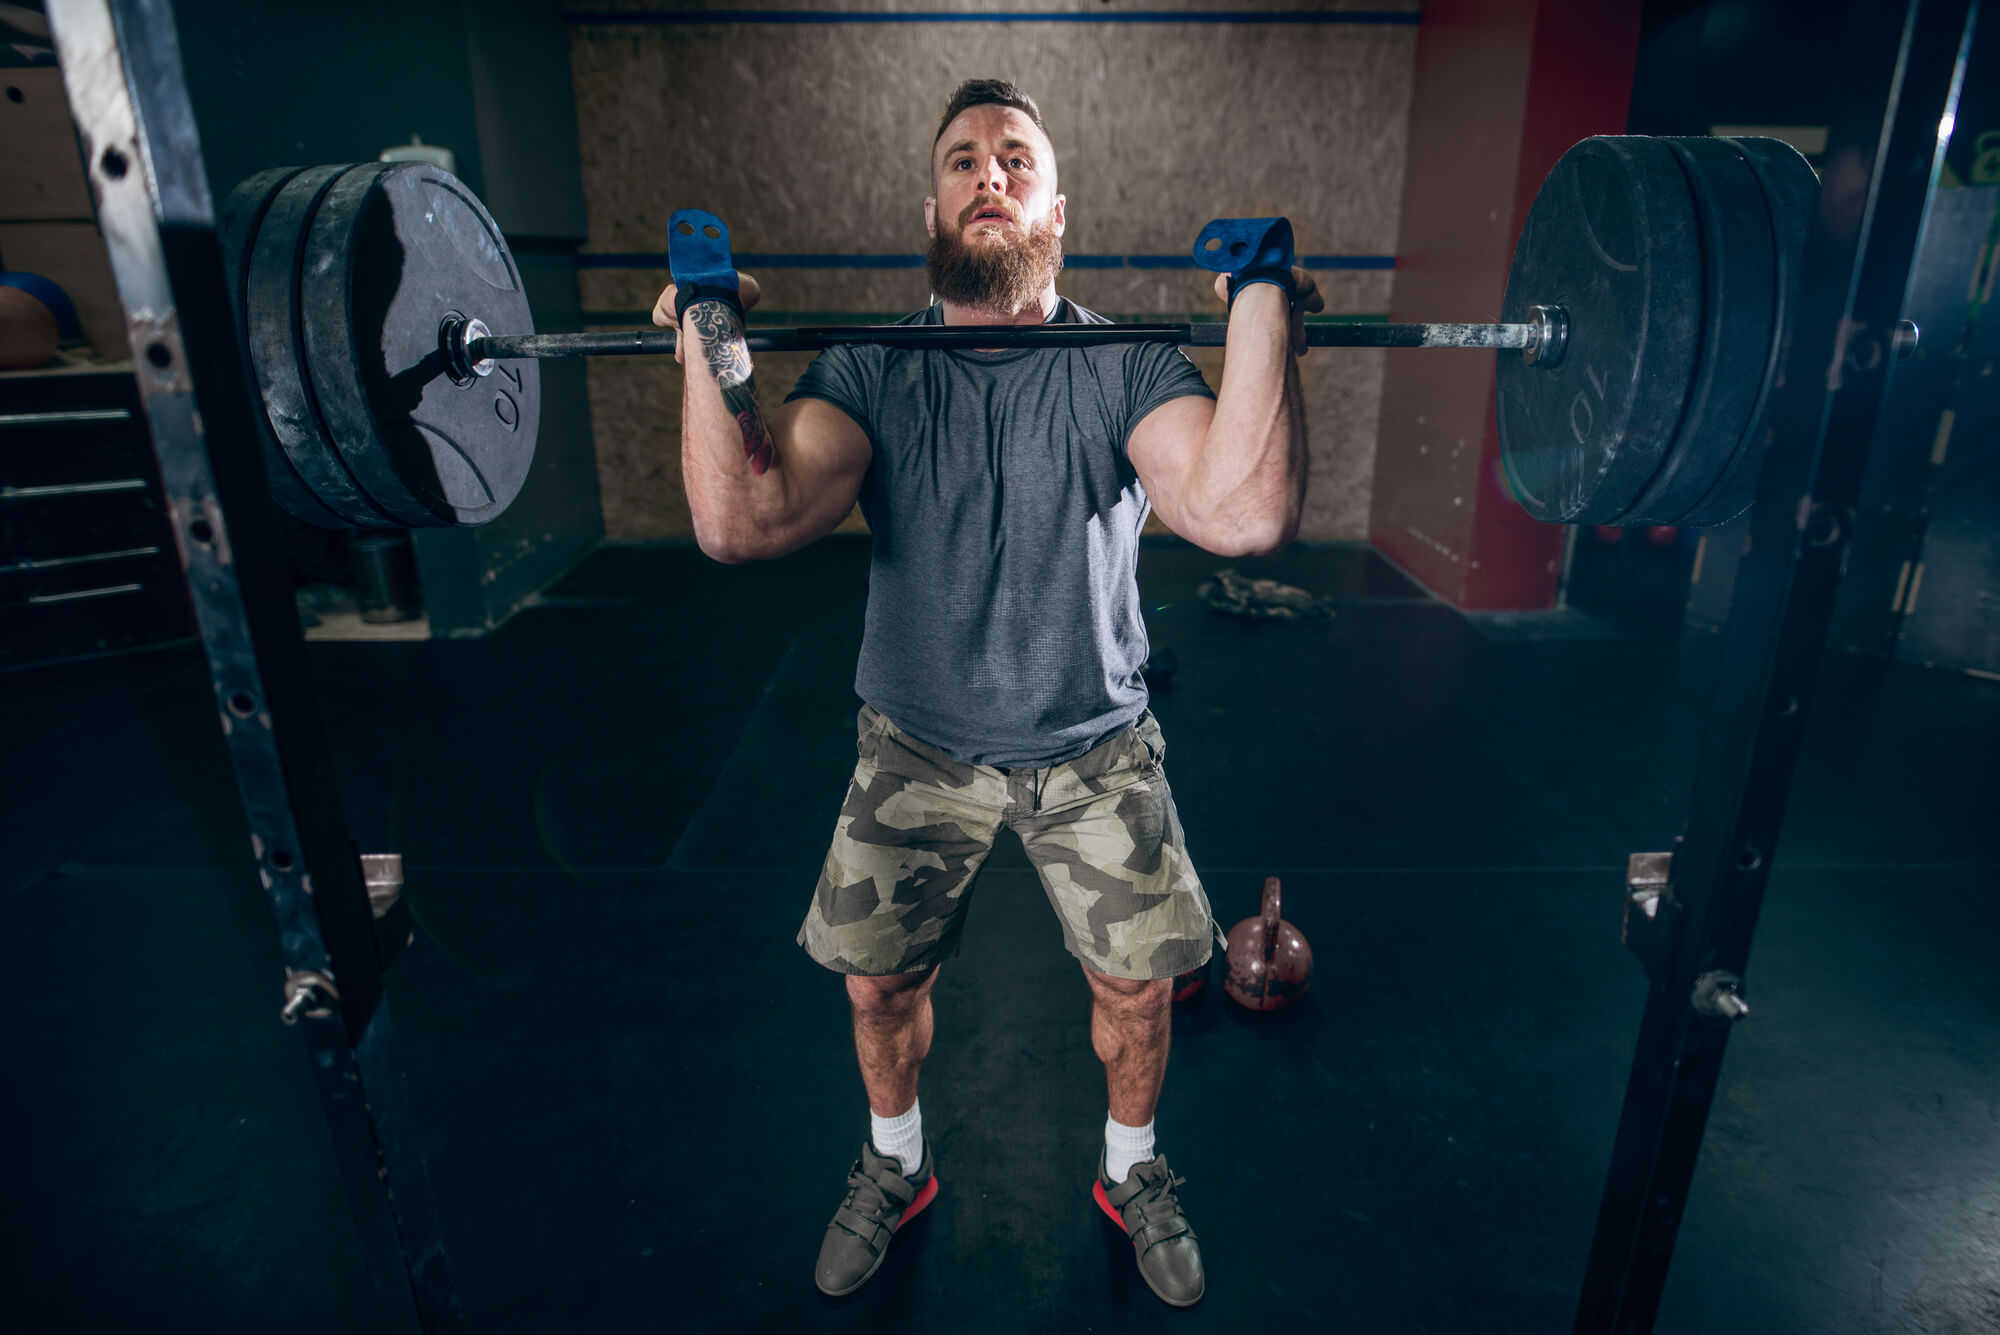 Will Olympic Weightlifting Build Muscle?